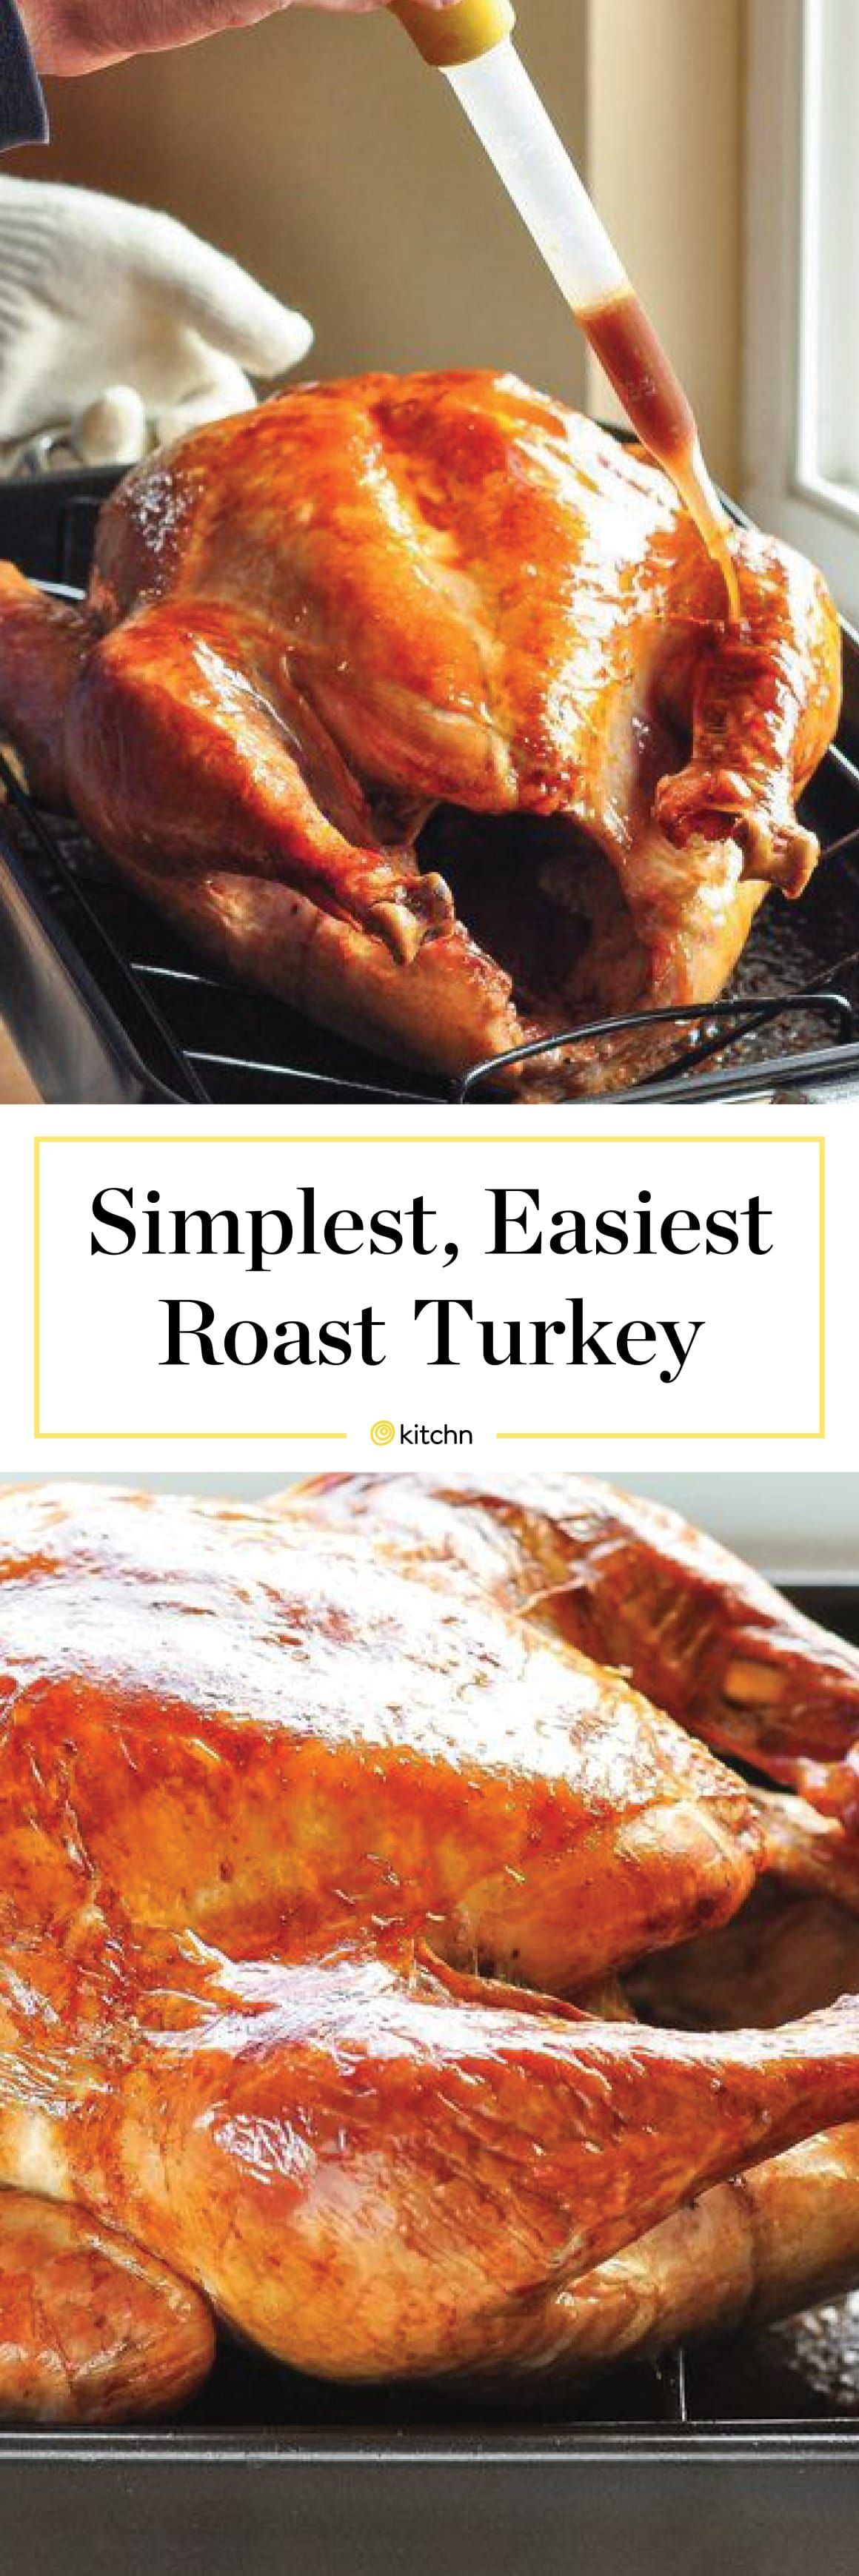 Photo of How To Cook a Turkey: The Simplest, Easiest Method